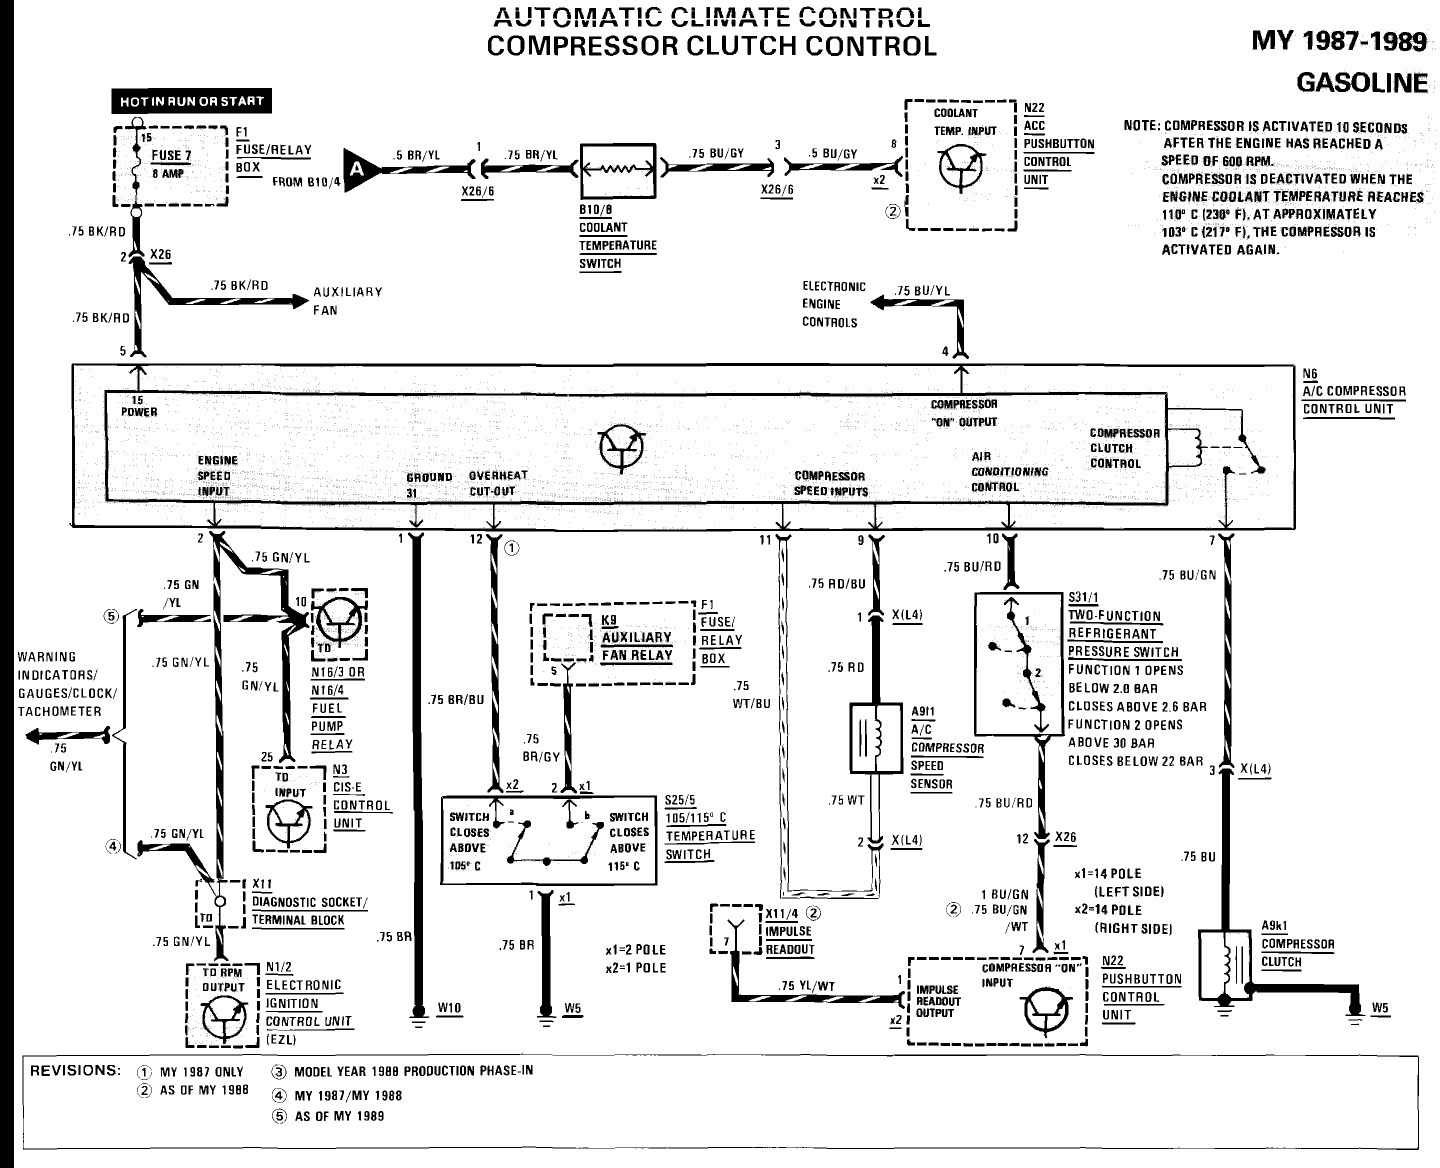 w124 air conditioner wiring diagram ex&le electrical wiring rh huntervalleyhotels co Basic Air Conditioner Wiring Diagram